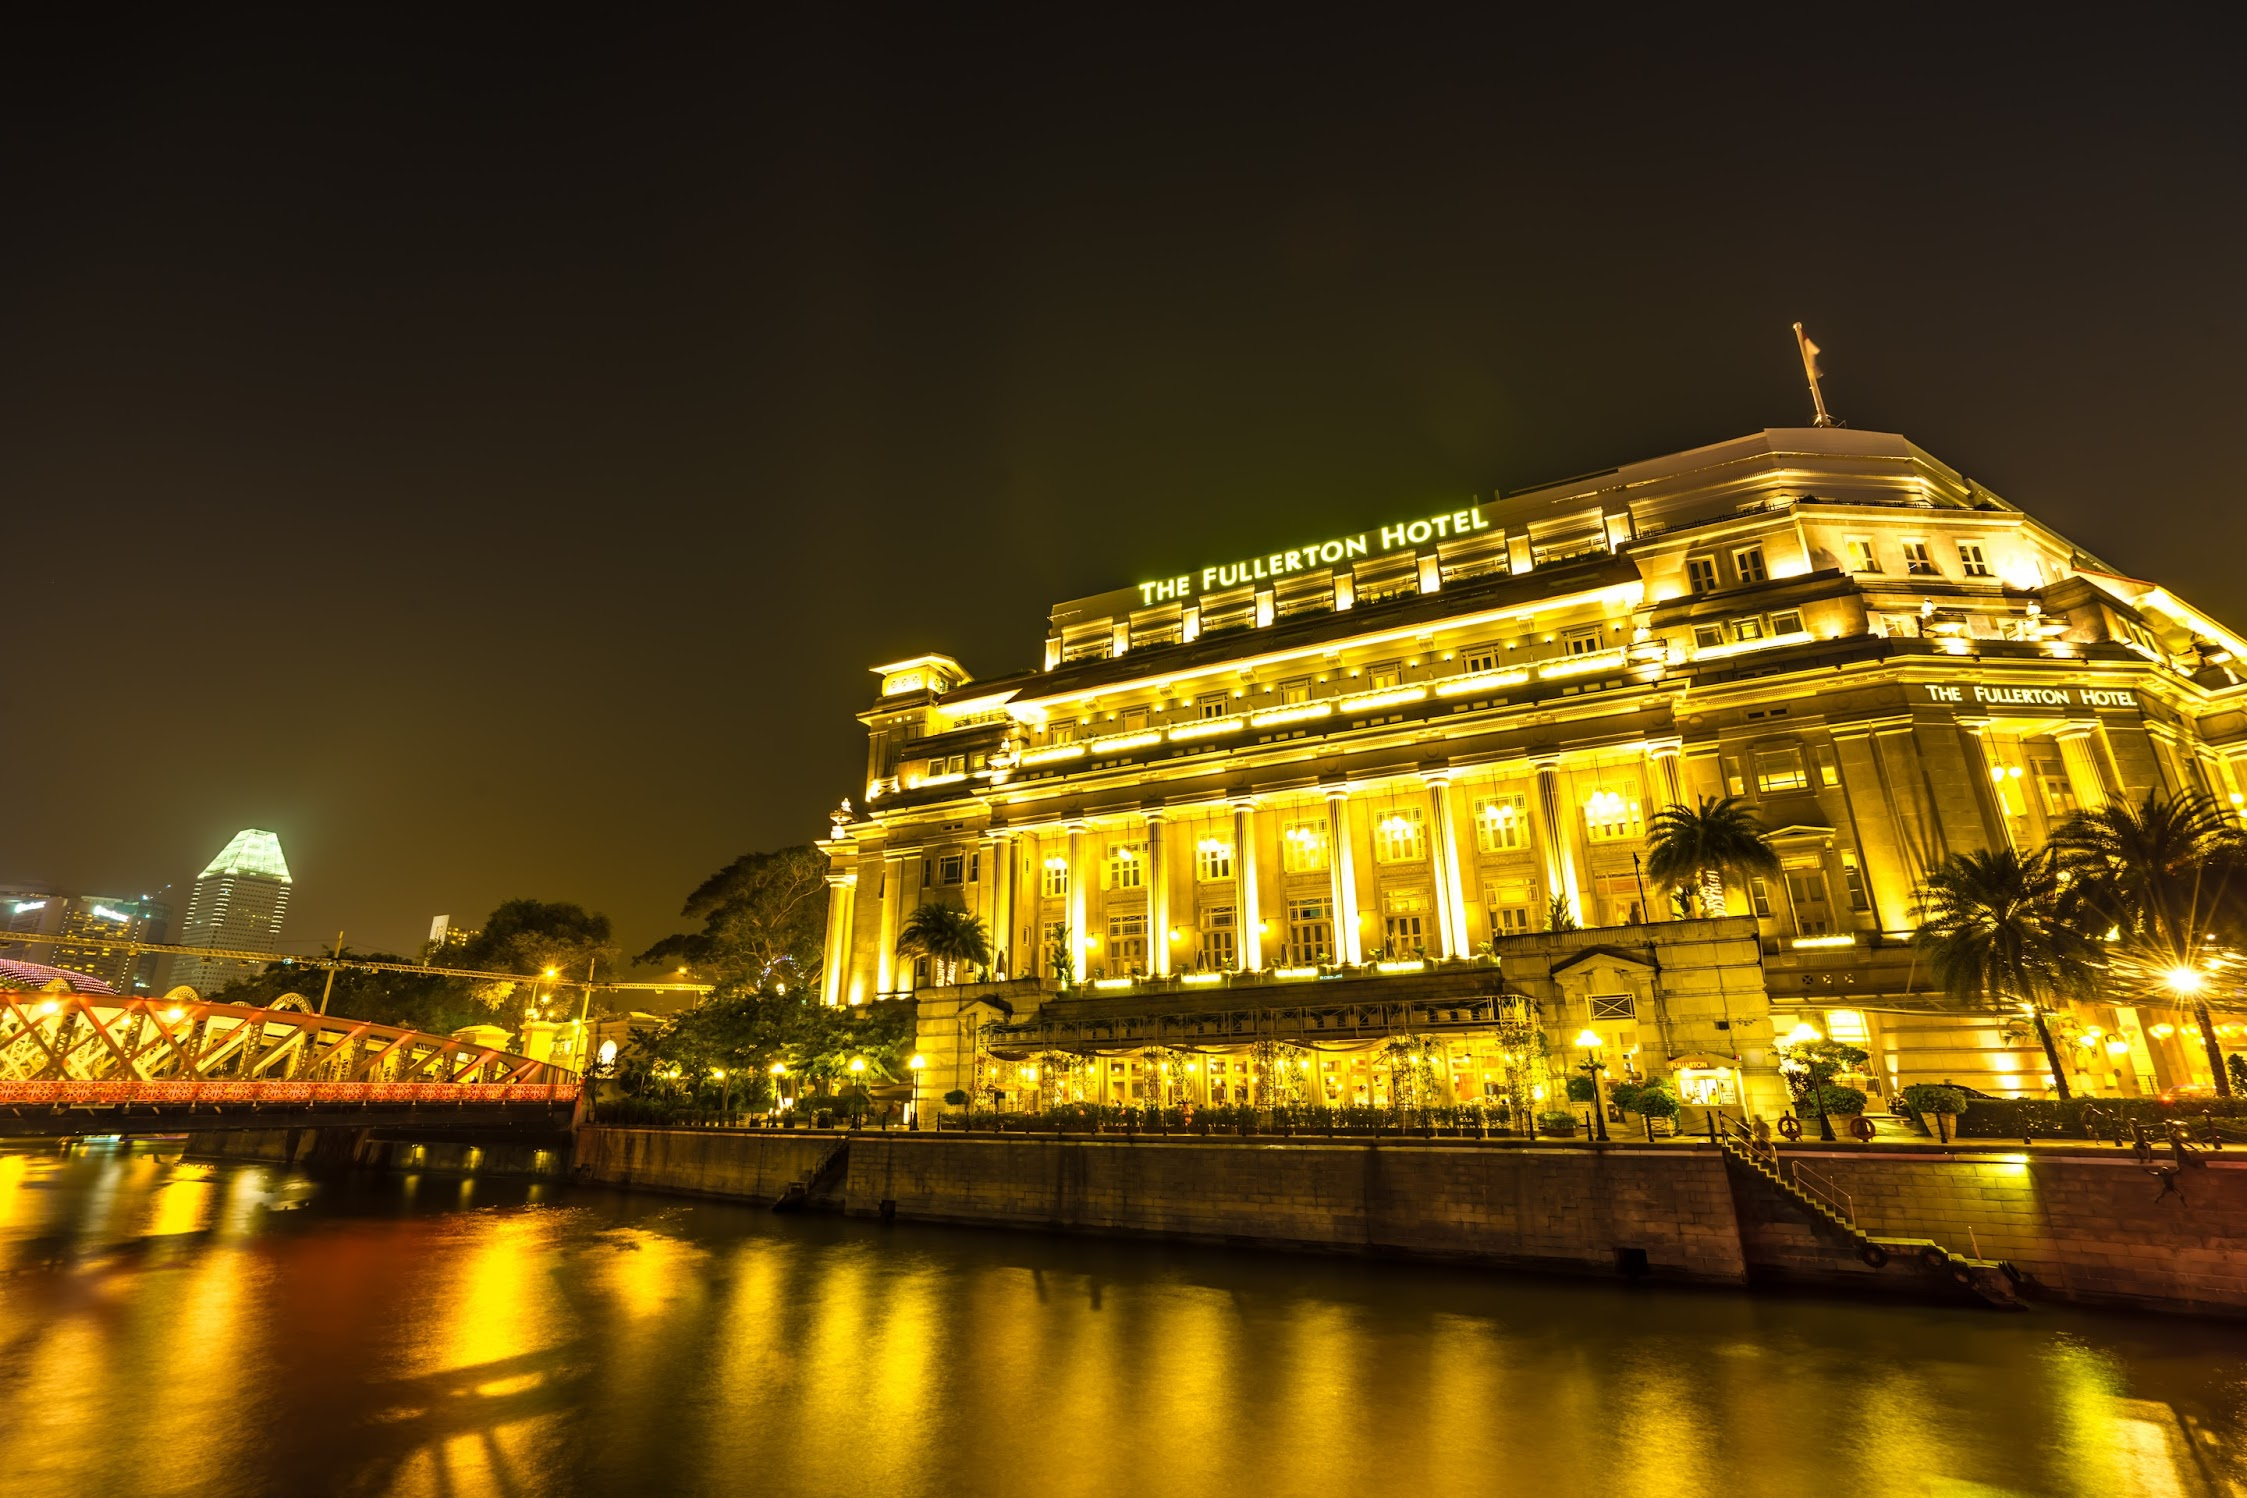 Singapore Fullerton Hotel night view5